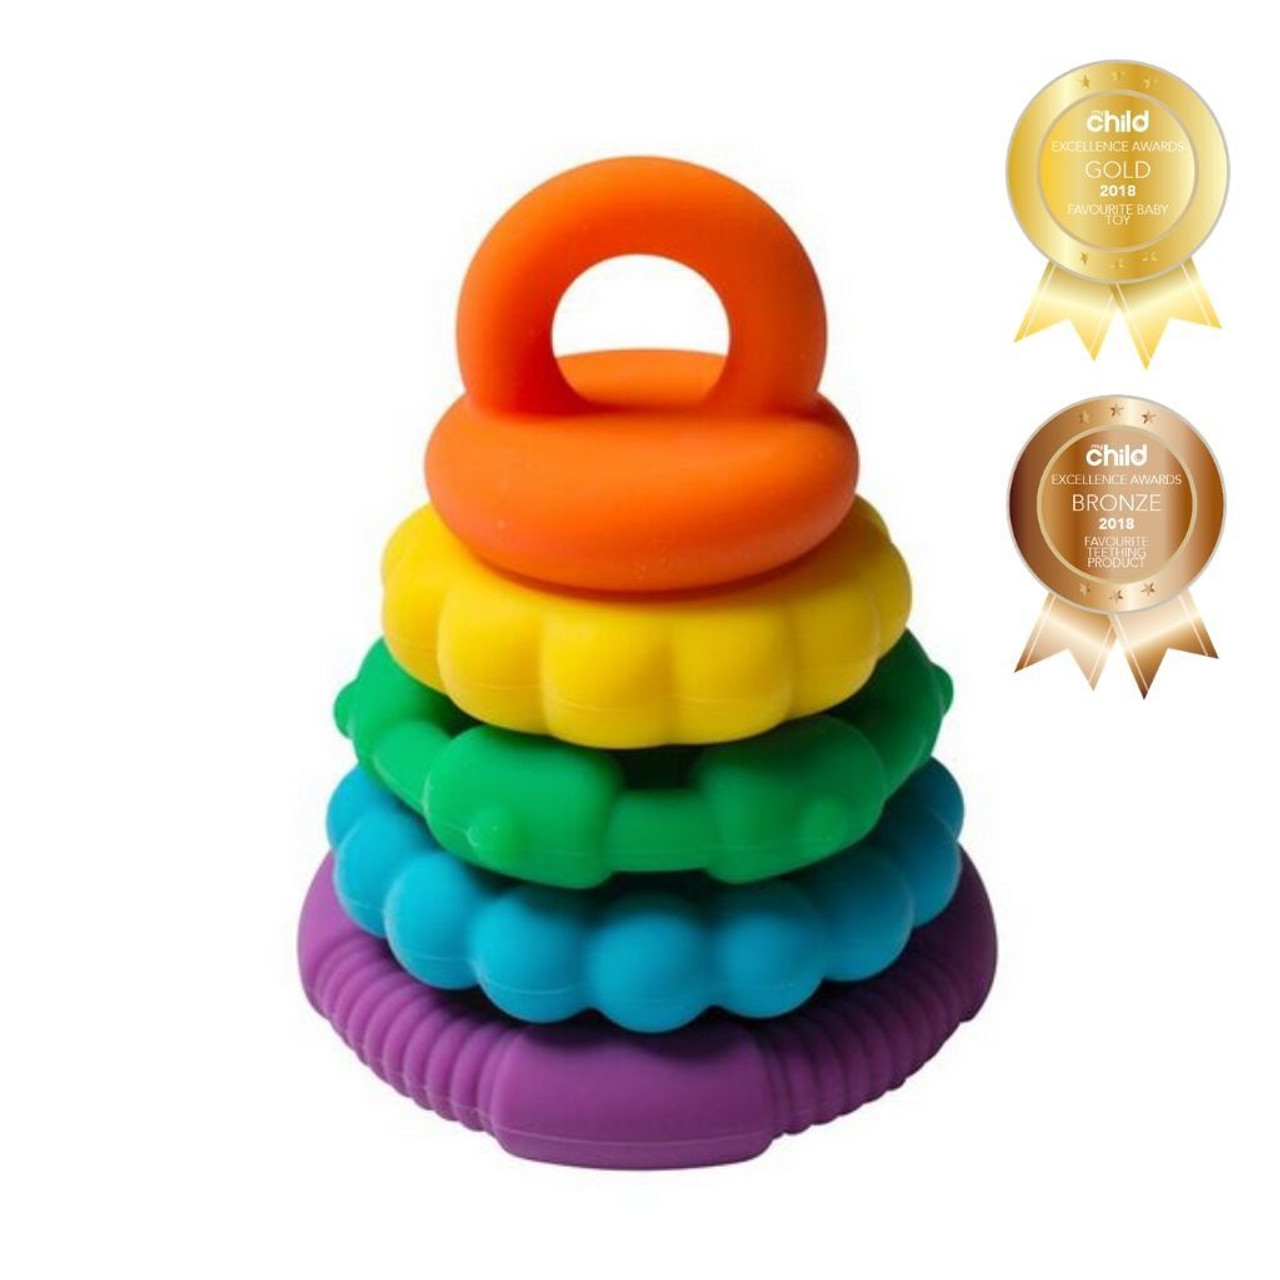 Jellystone Rainbow Stacker - BRIGHT RAINBOW